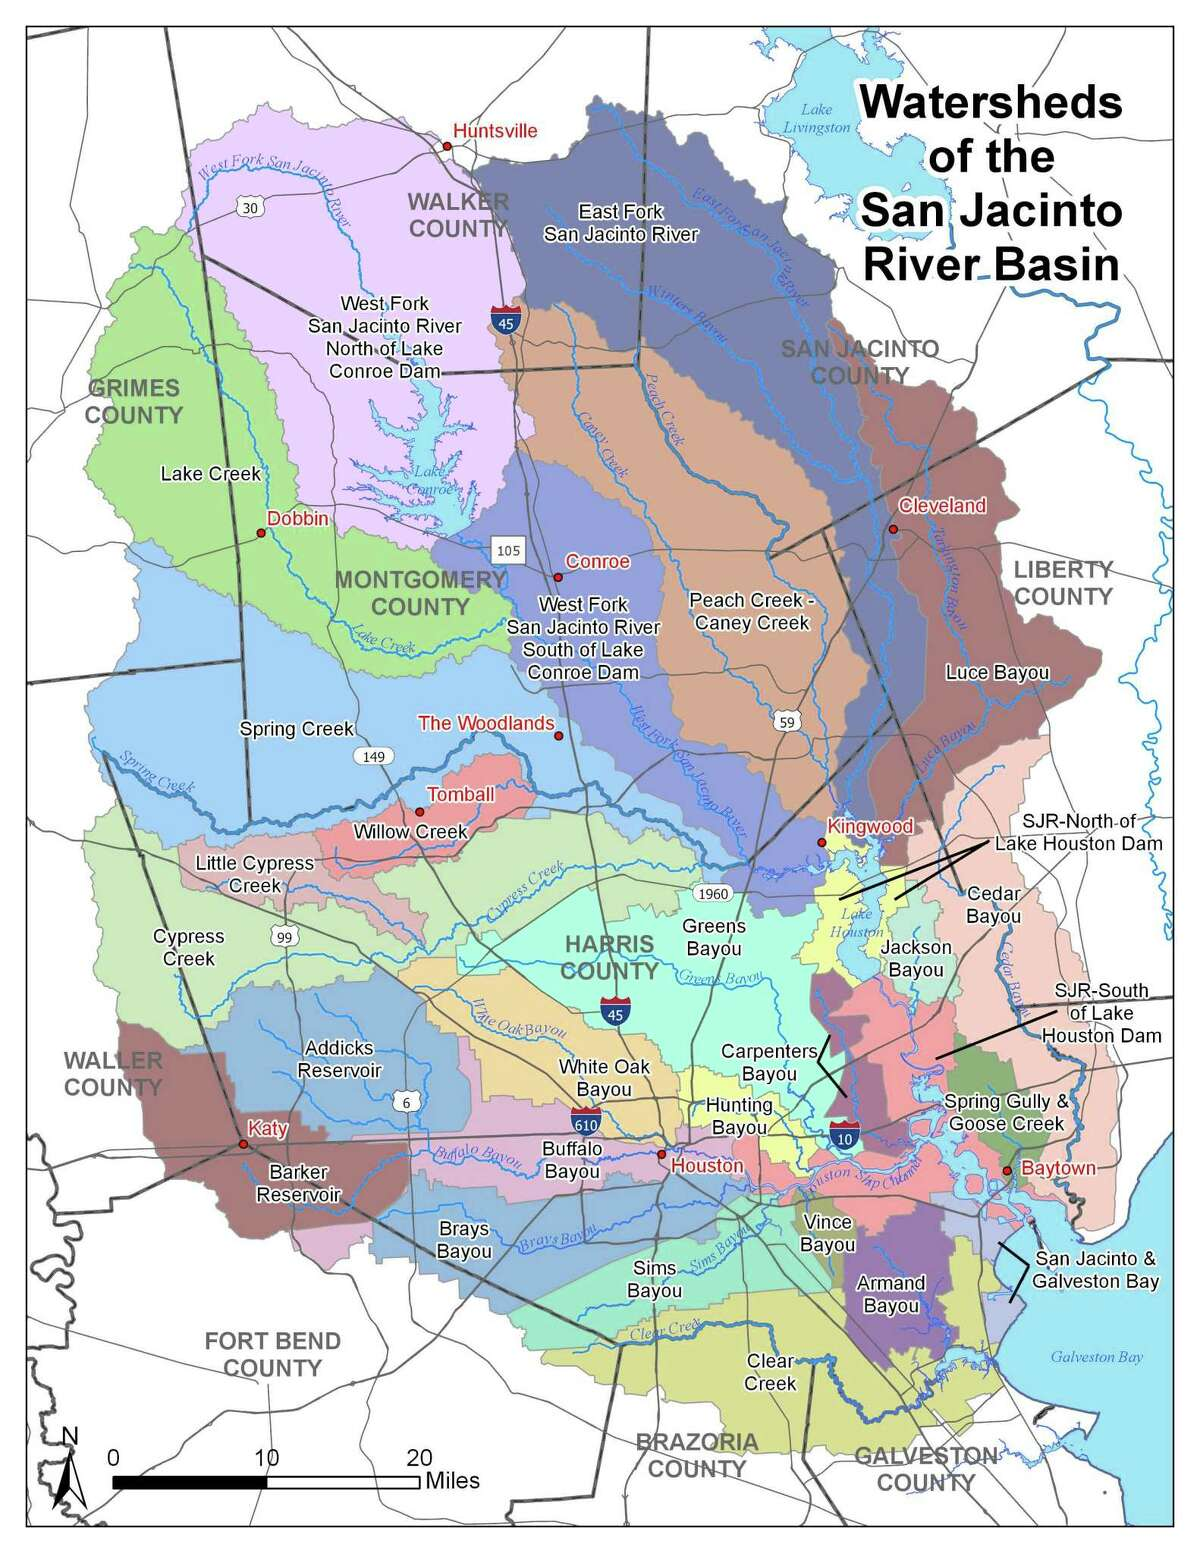 The San Jacinto River Authority covers water systems from Huntsville to the coast. Lake Conroe and Lake Houston are major water sources in the San Jacinto Watershed that continue to have community turmoil building over whether Lake Conroe should be lowered two feet below normal elevation levels to protect those downstream during potential flooding events.